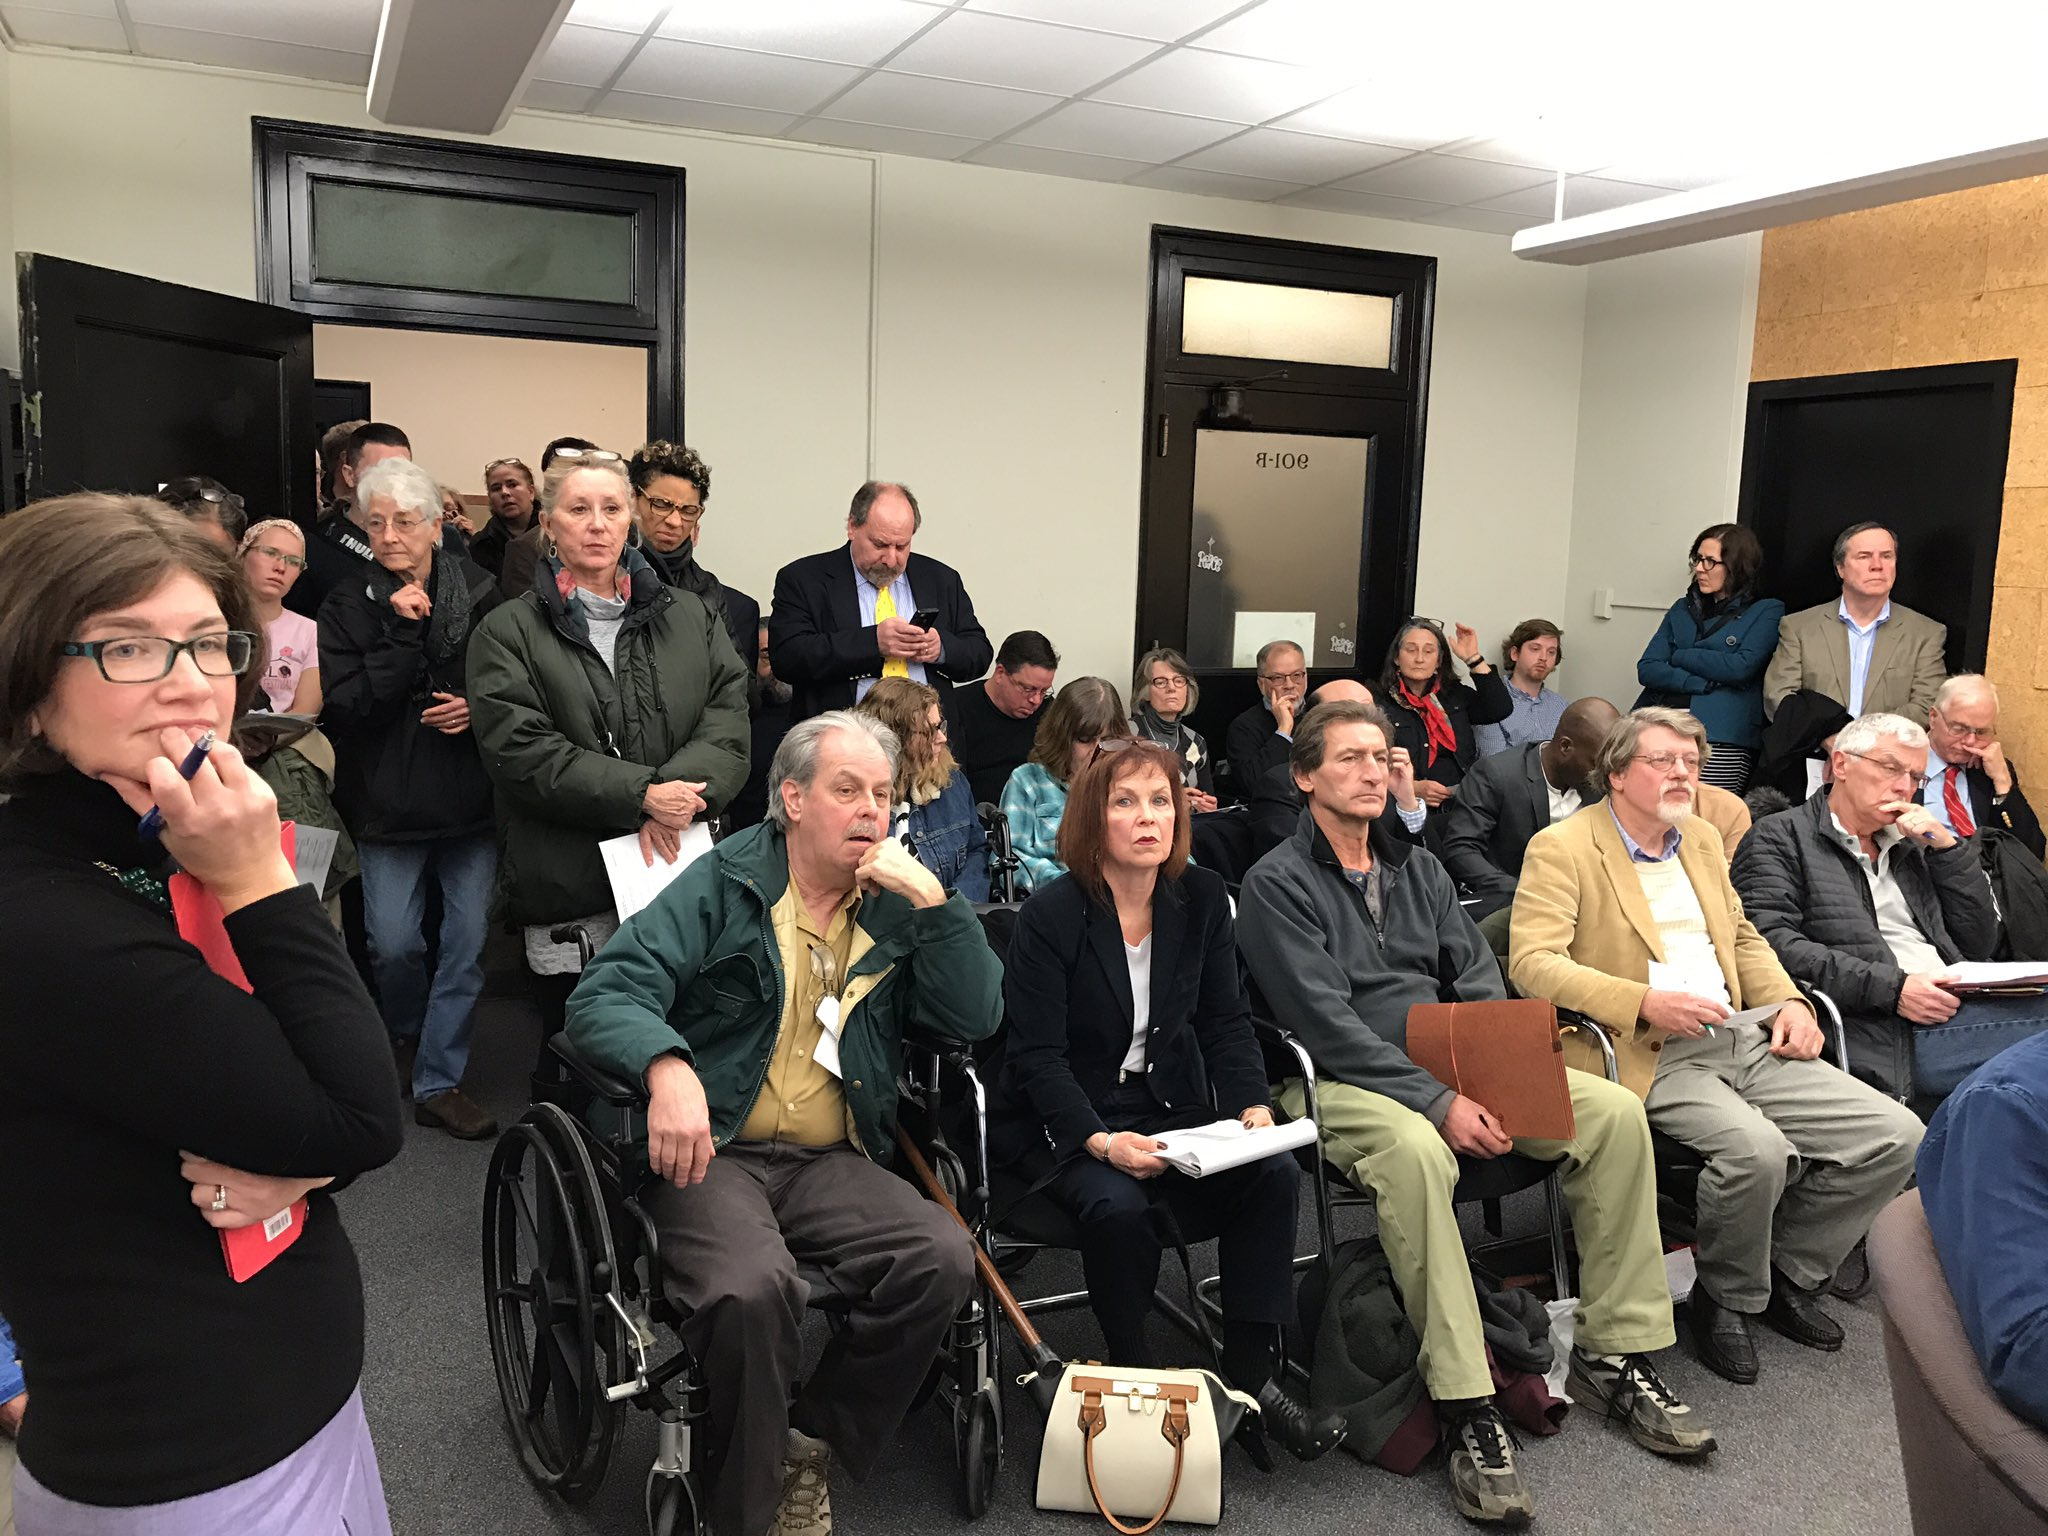 An overflow crowd at the Buffalo Preservation Board meeting got heated during the discussion. (Mark Sommer/Buffalo News)